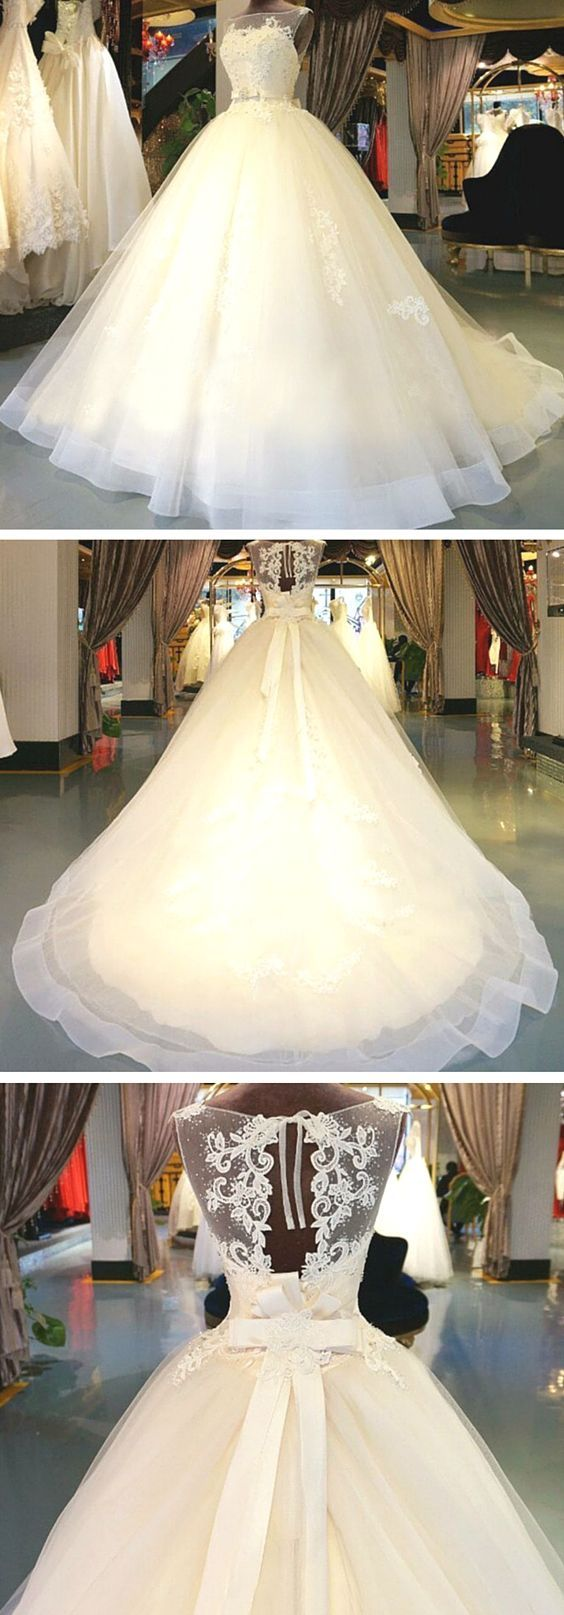 Embellished lace and crystal tulle chapel train wedding dress. This gown is intr...